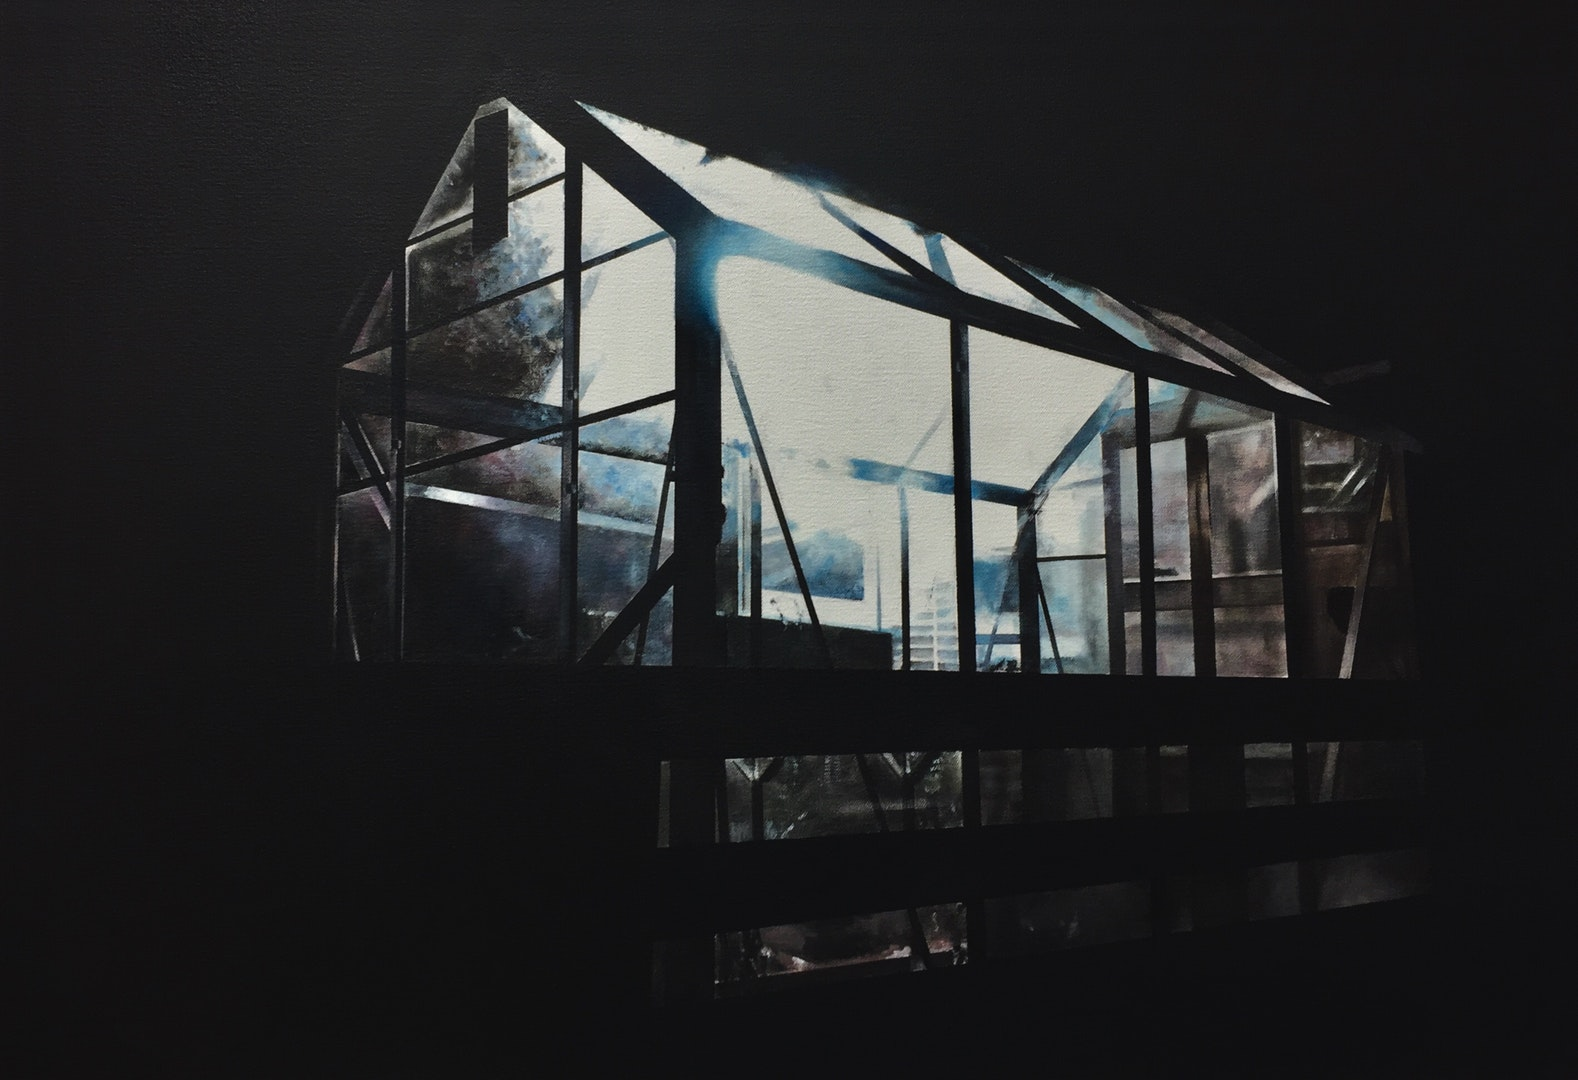 'Glass house', Christopher Campbell, Oil on canvas, 45 x 65 x 3 cm